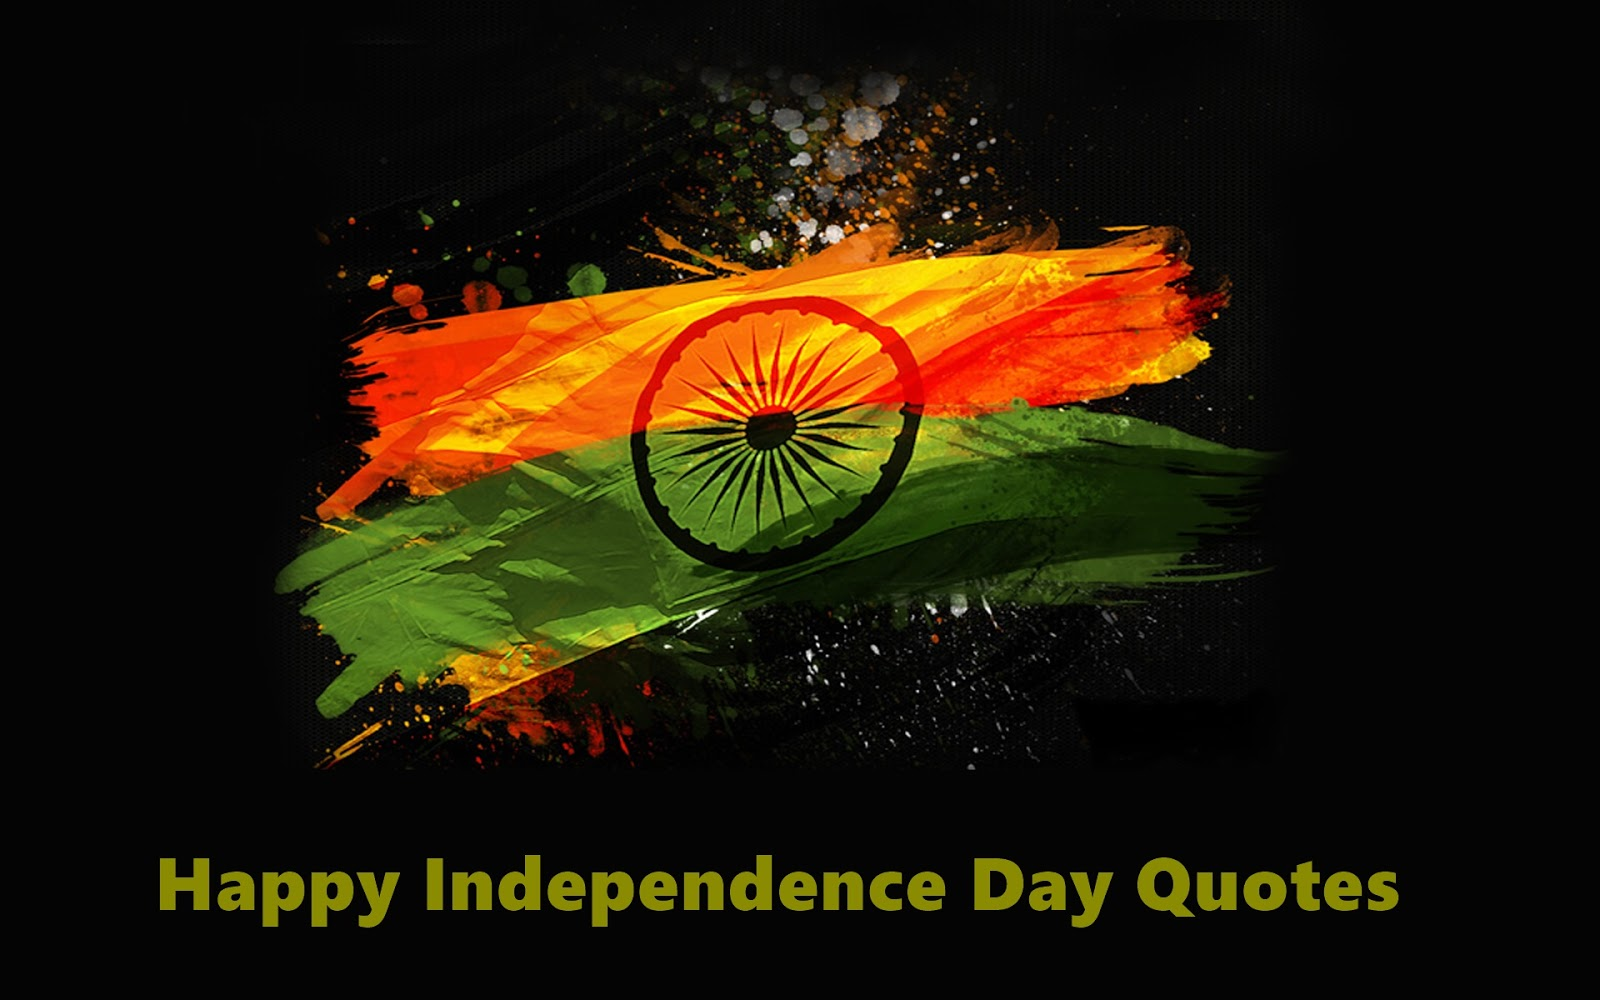 Independence Day Quotes 2016